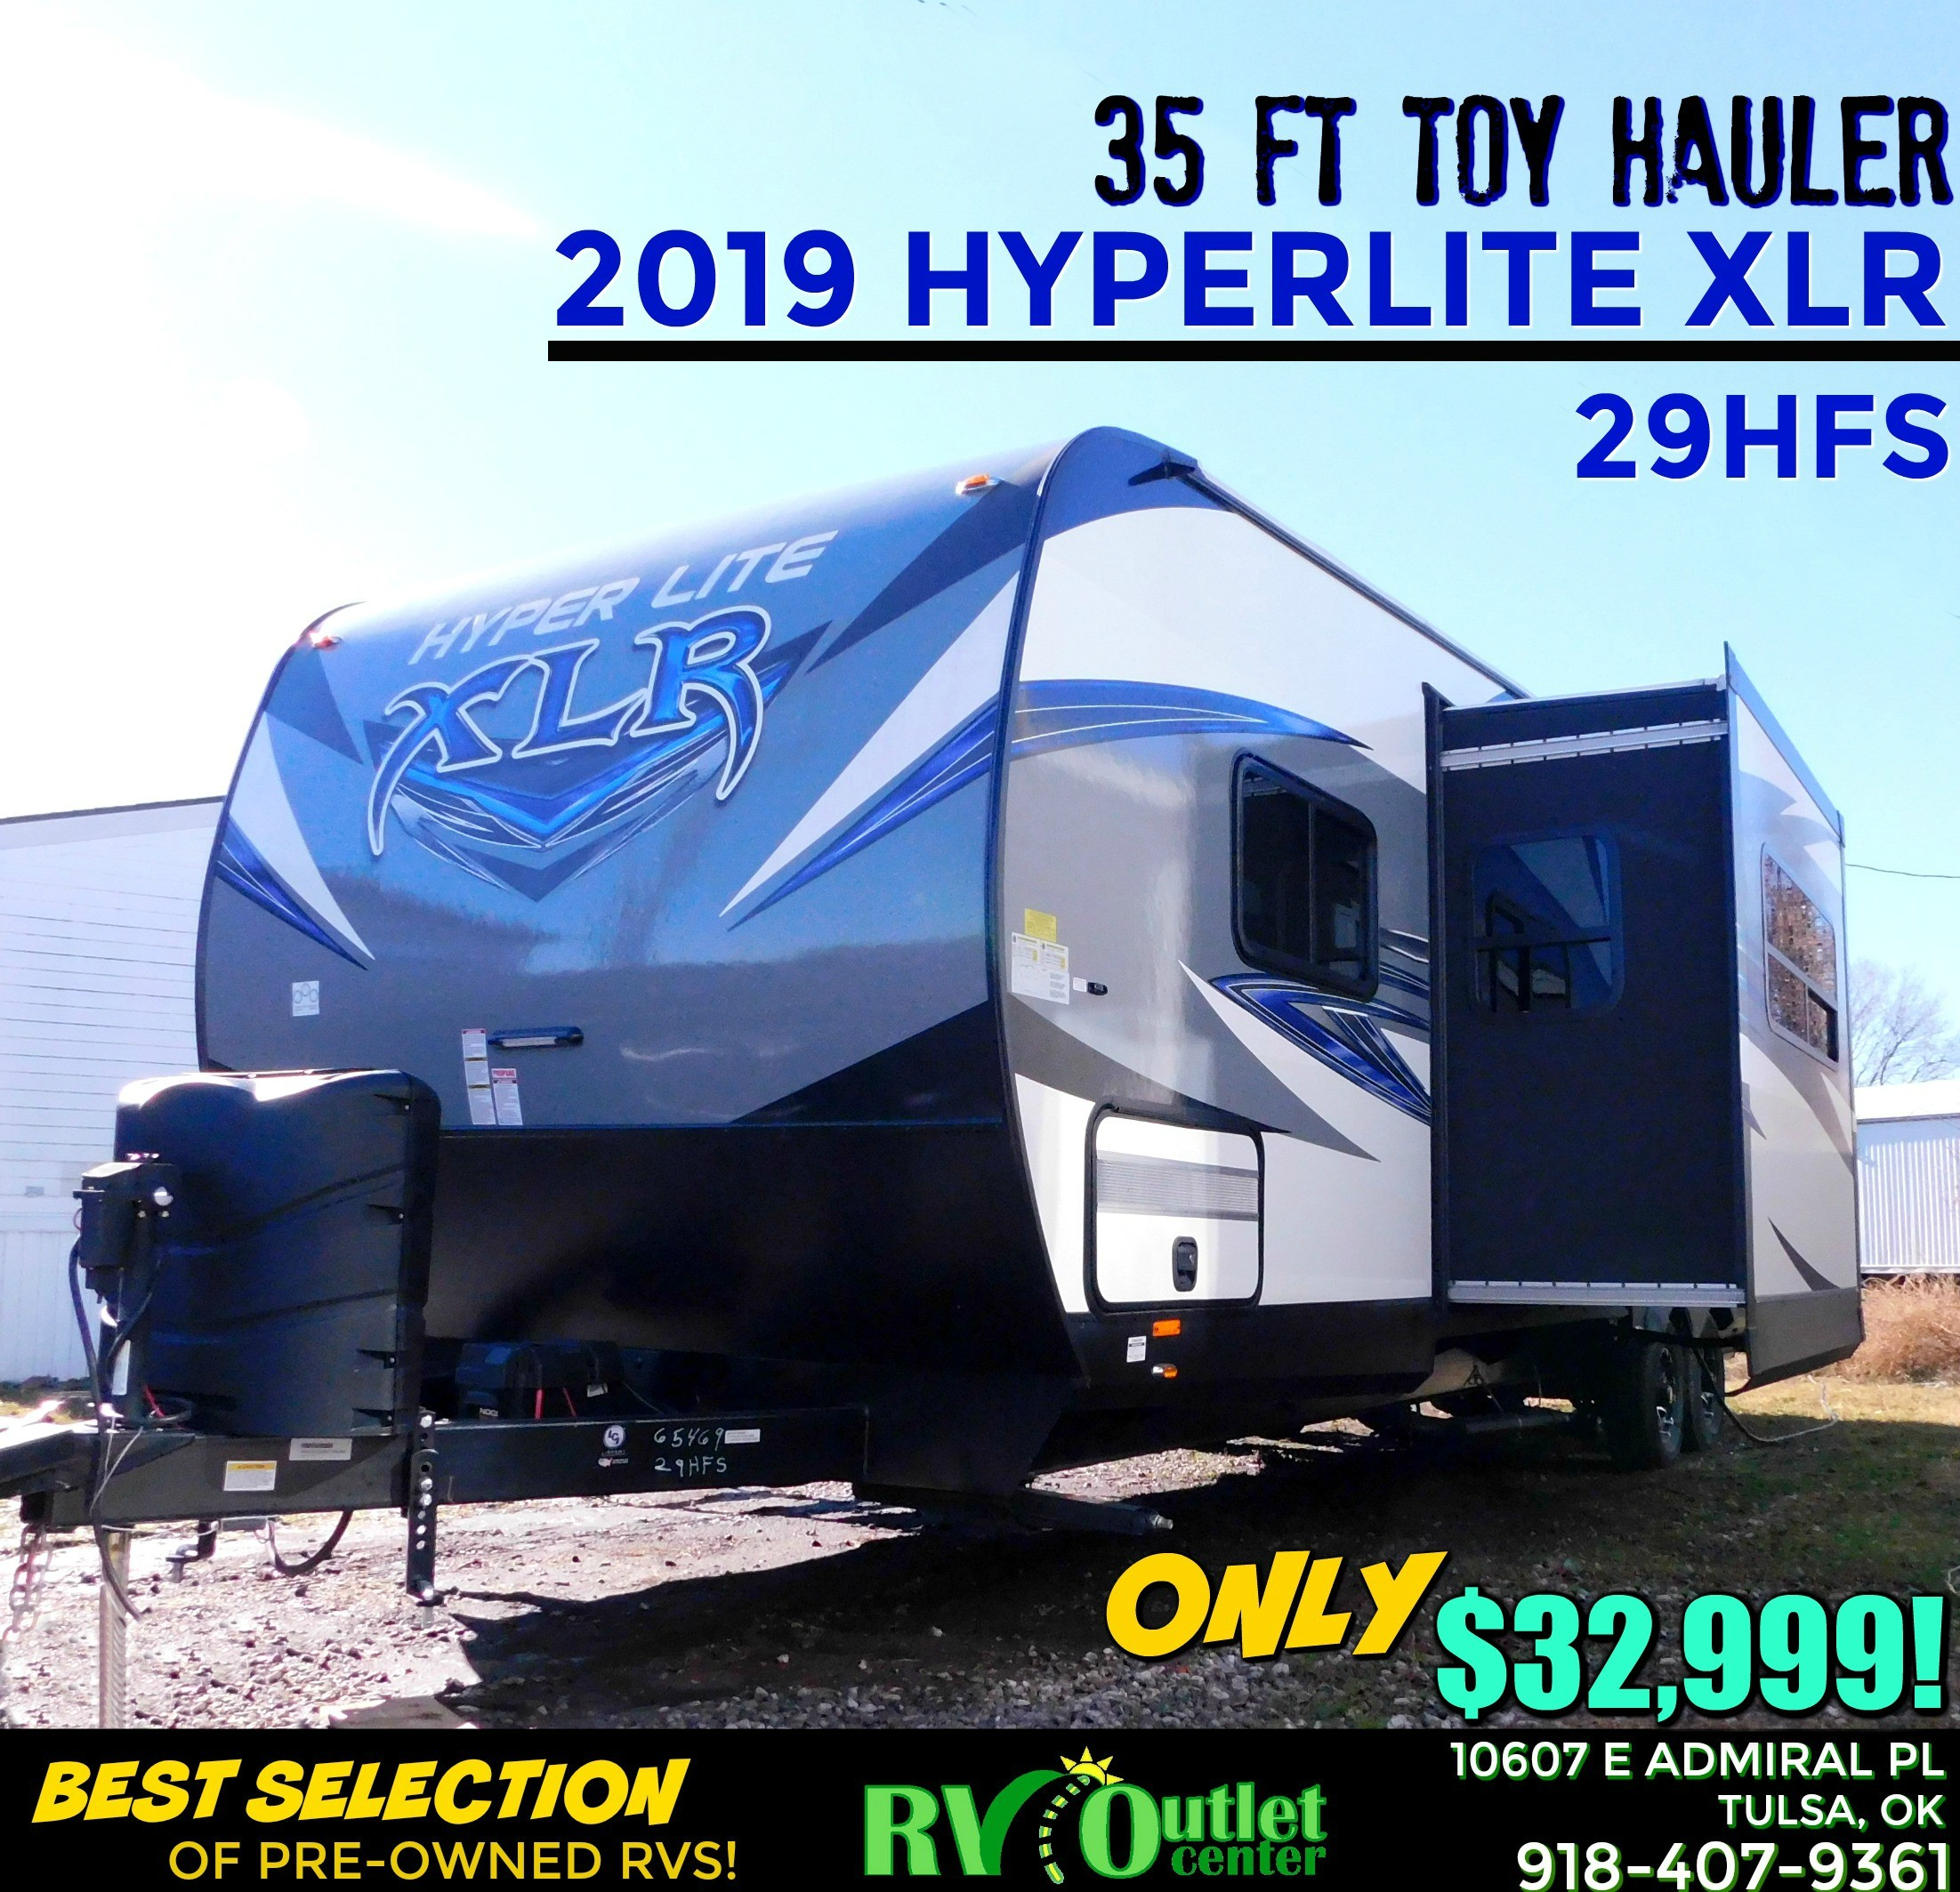 Used 2019 Hyperlite RVs XLR 29HFS in Tulsa, OK